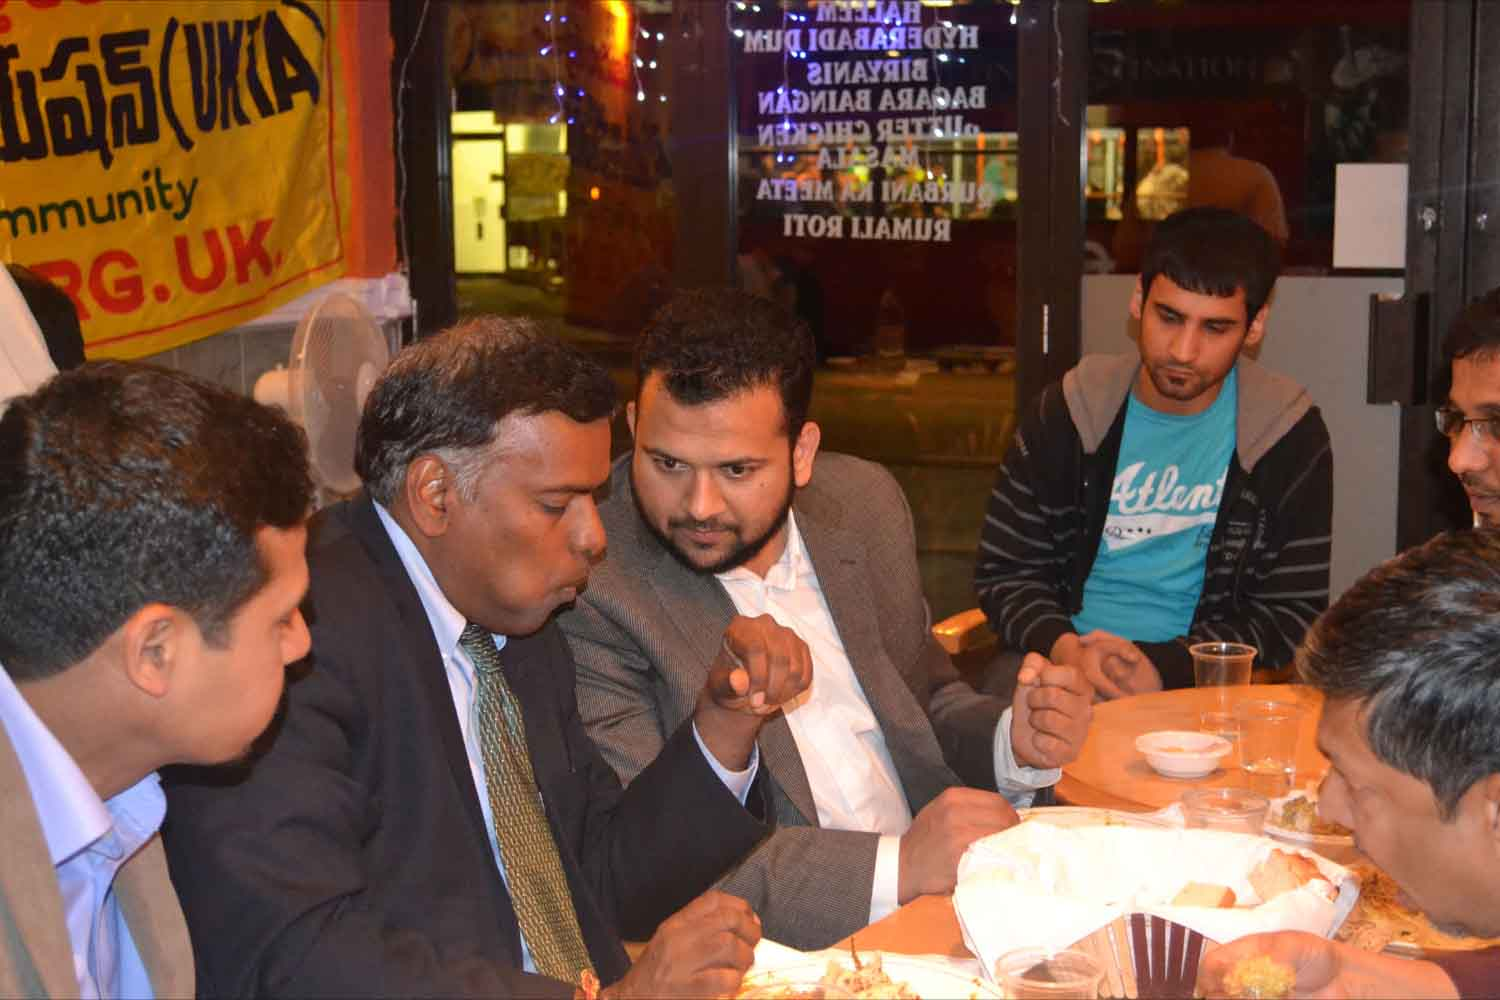 ukta championing interfaith relations – iftar party-2